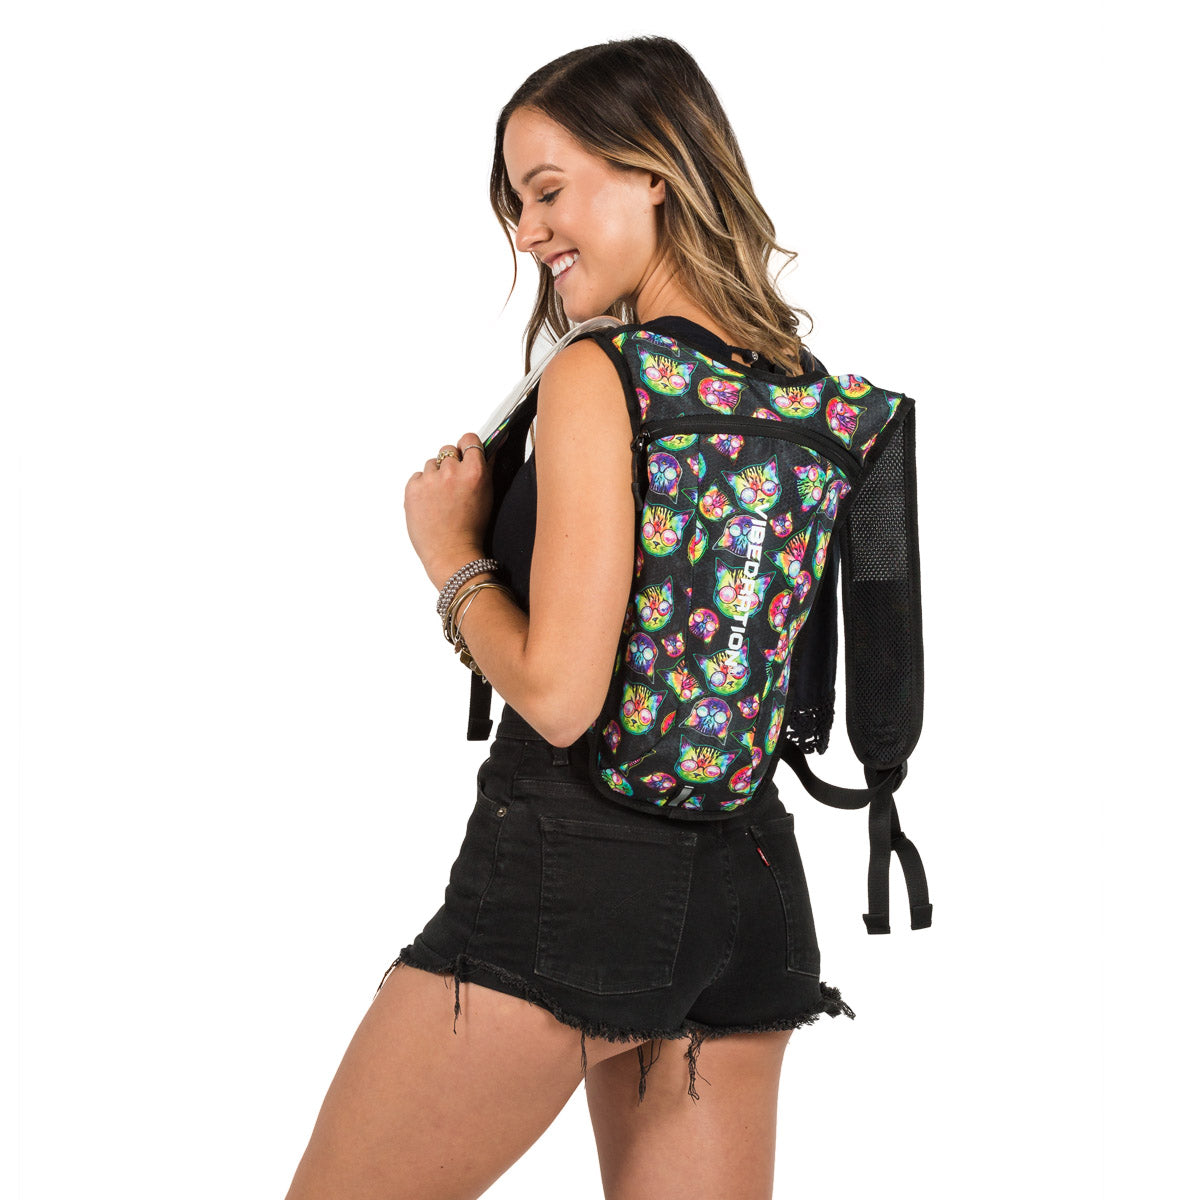 Kosmic Kitties Two Liter Hydration Pack